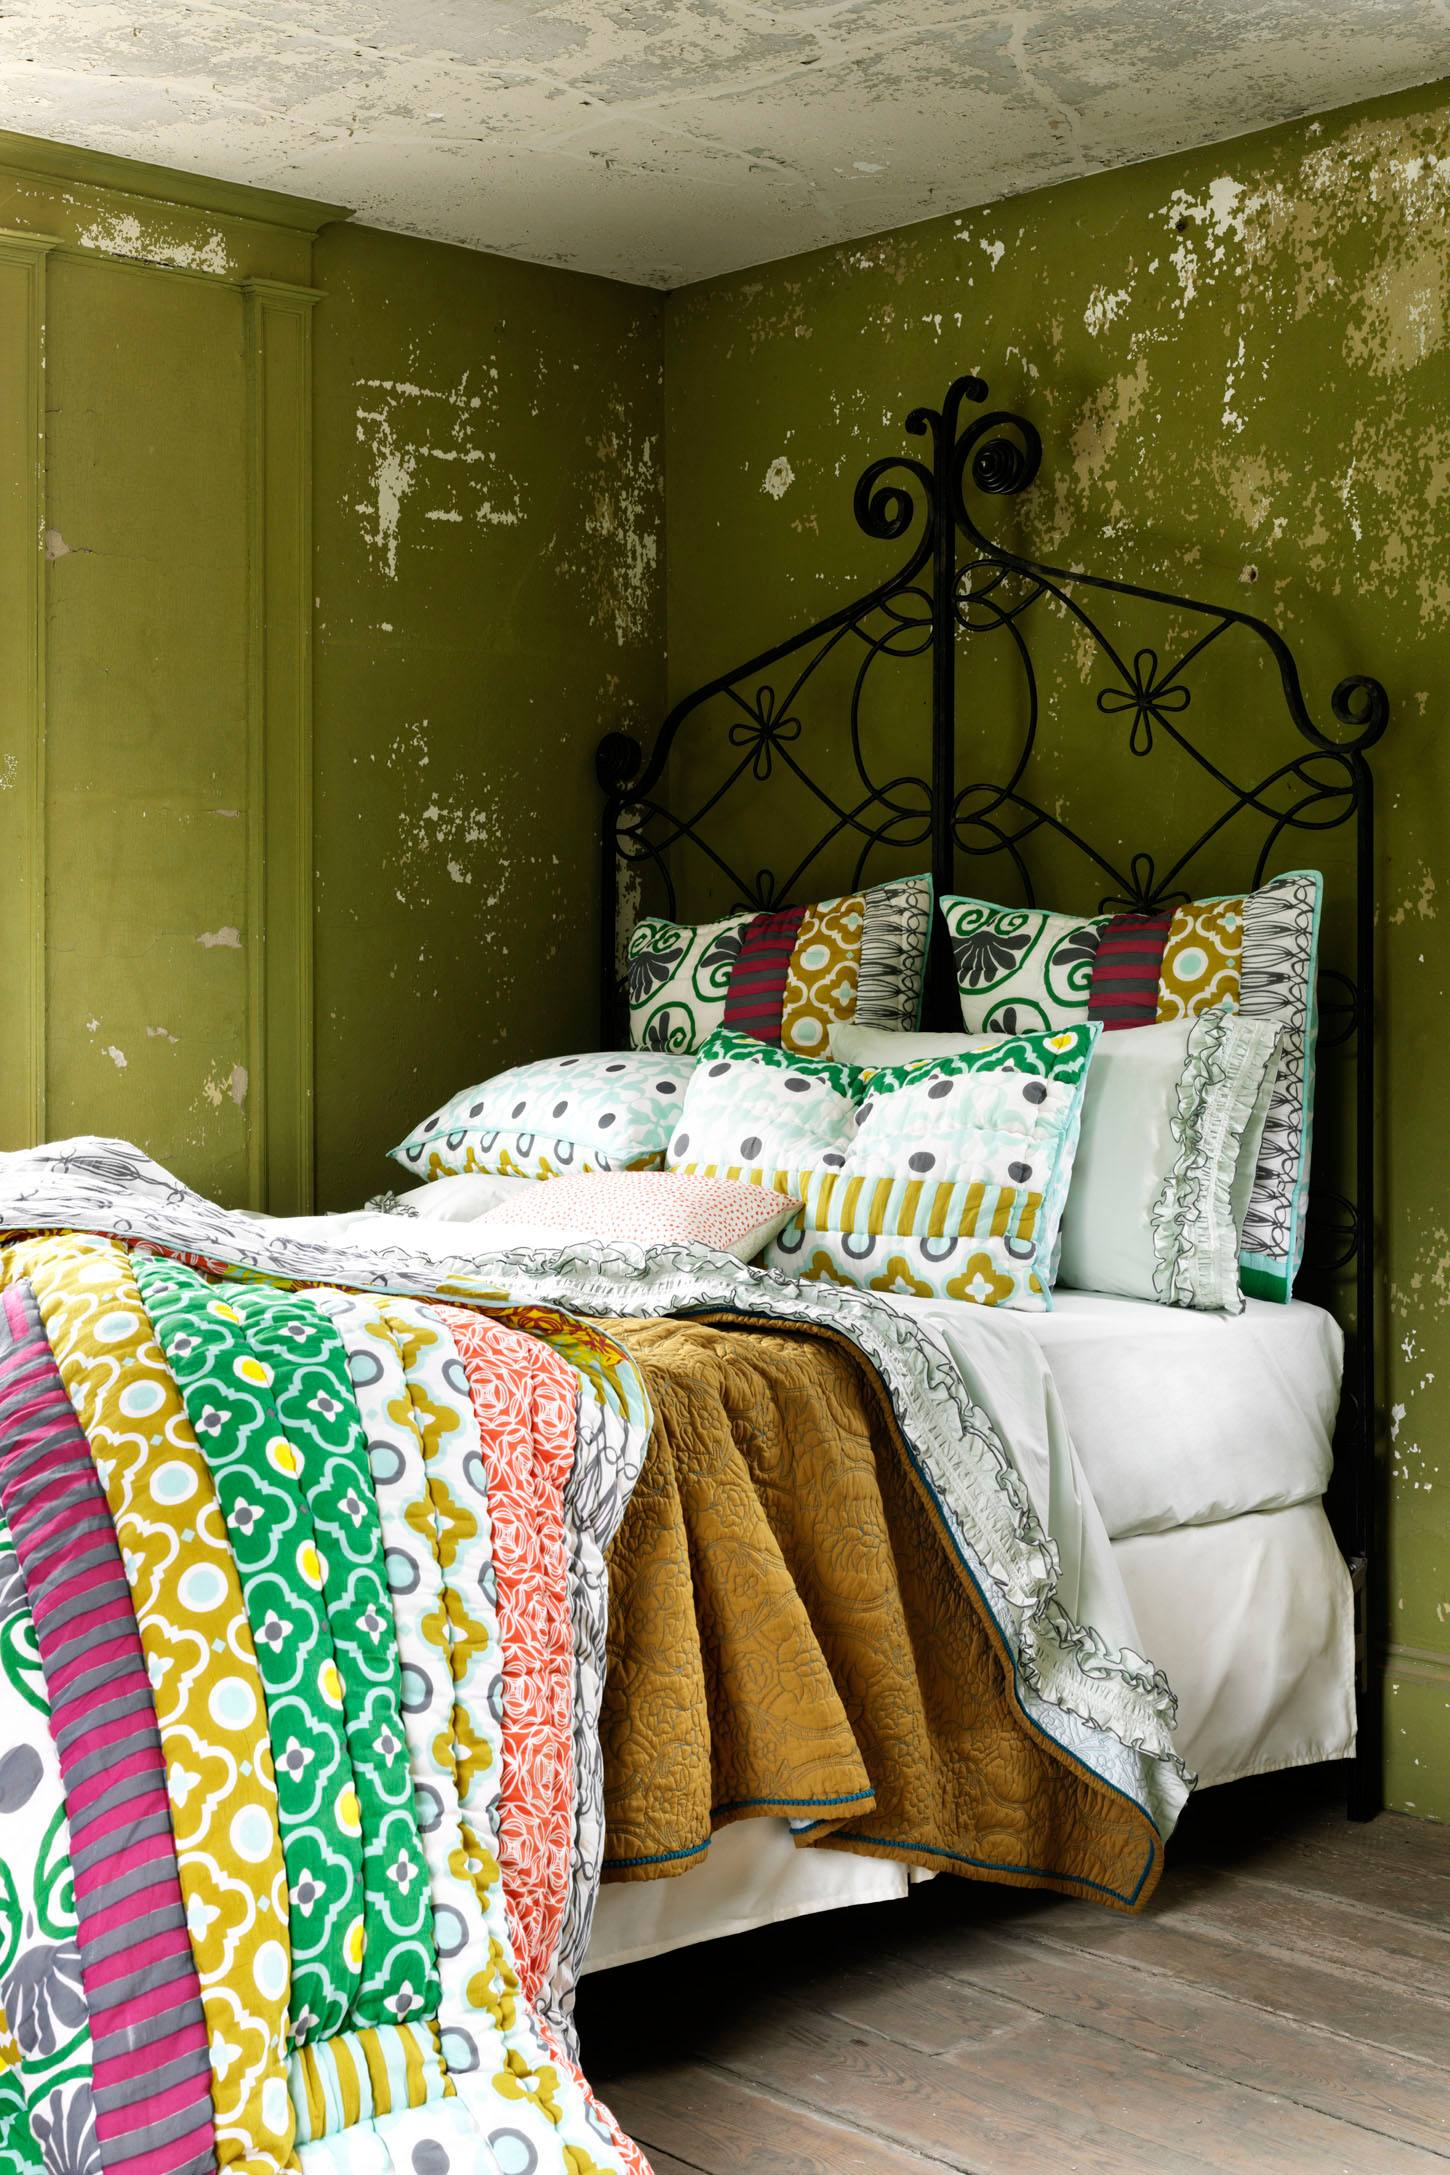 Anthropologie bedding - Anthropologie Bedding